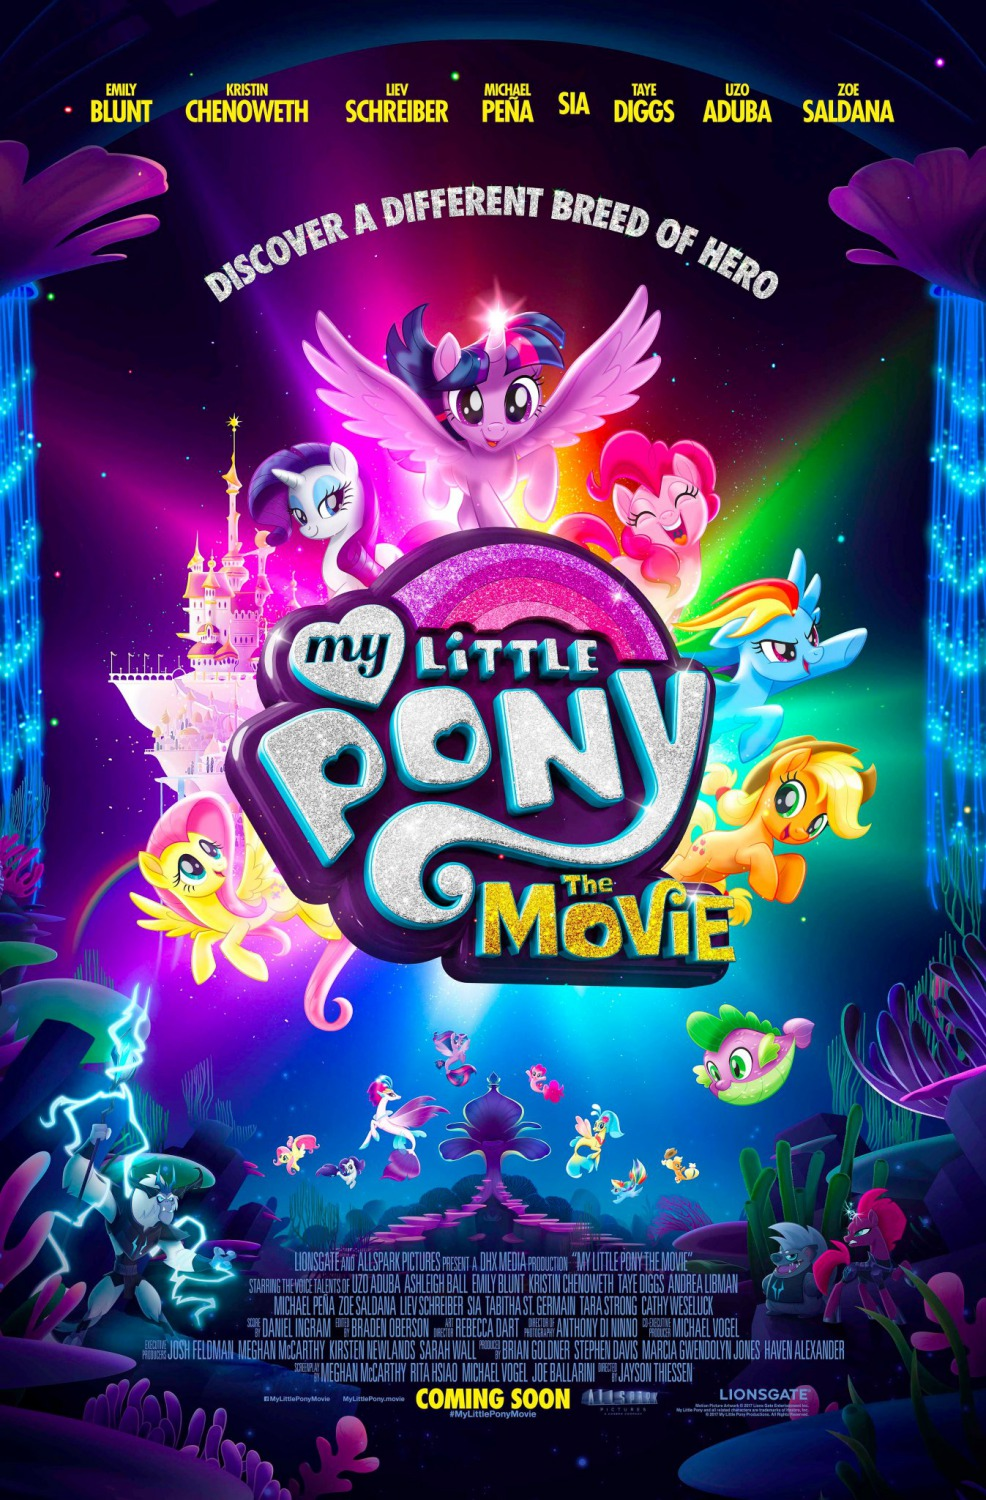 my_little_pony_the_movie_ver4_xlg.jpg